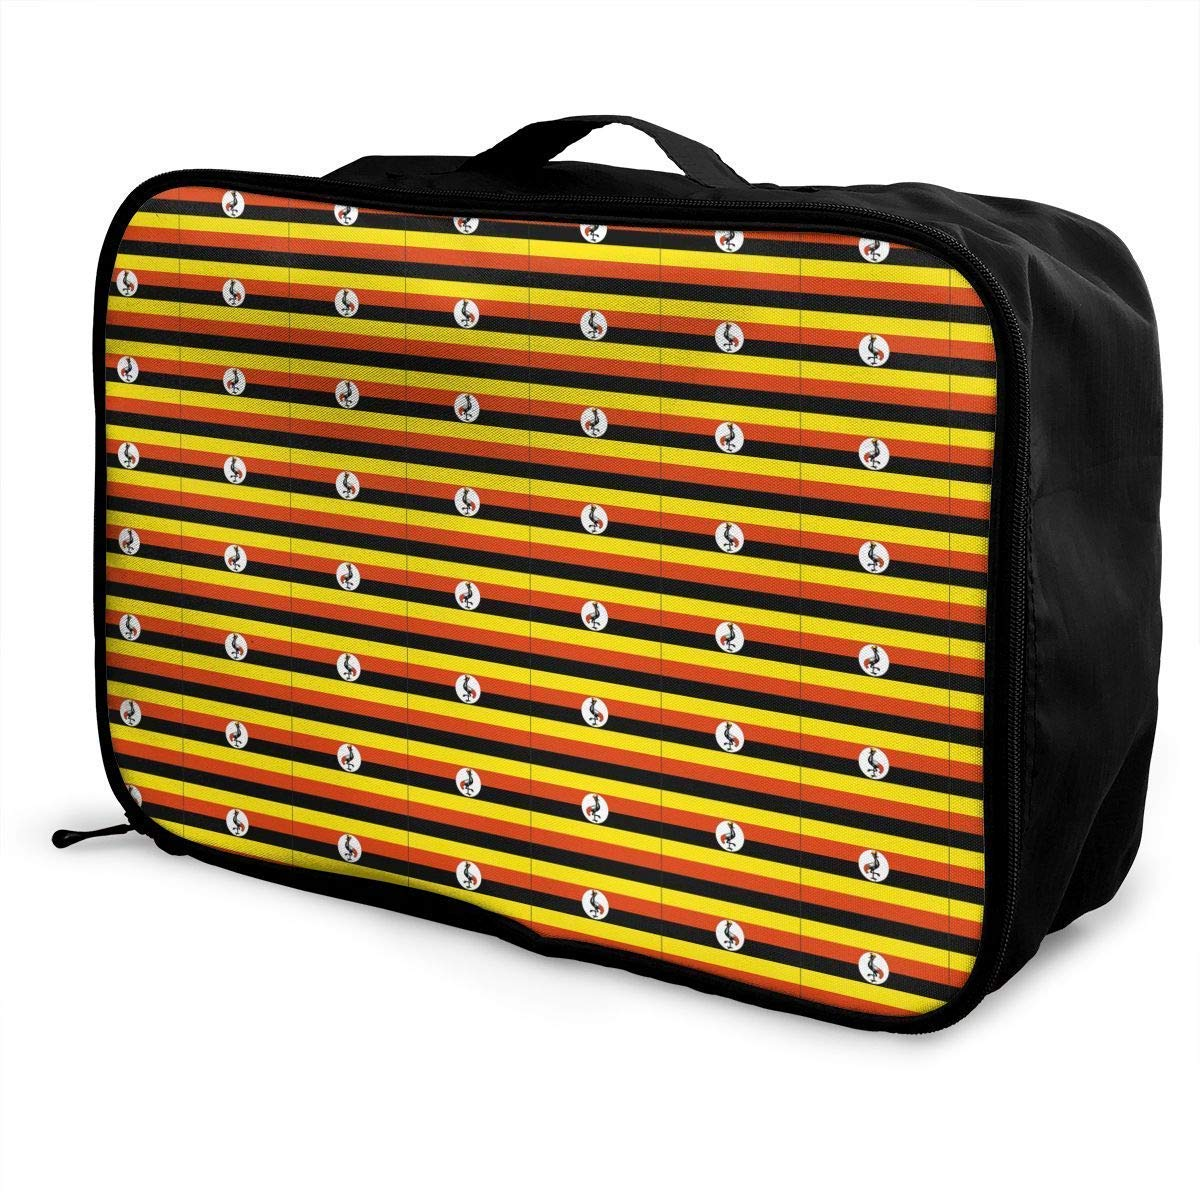 Portable Luggage Duffel Bag Originality Uganda Flag Travel Bags Carry-on in Trolley Handle JTRVW Luggage Bags for Travel